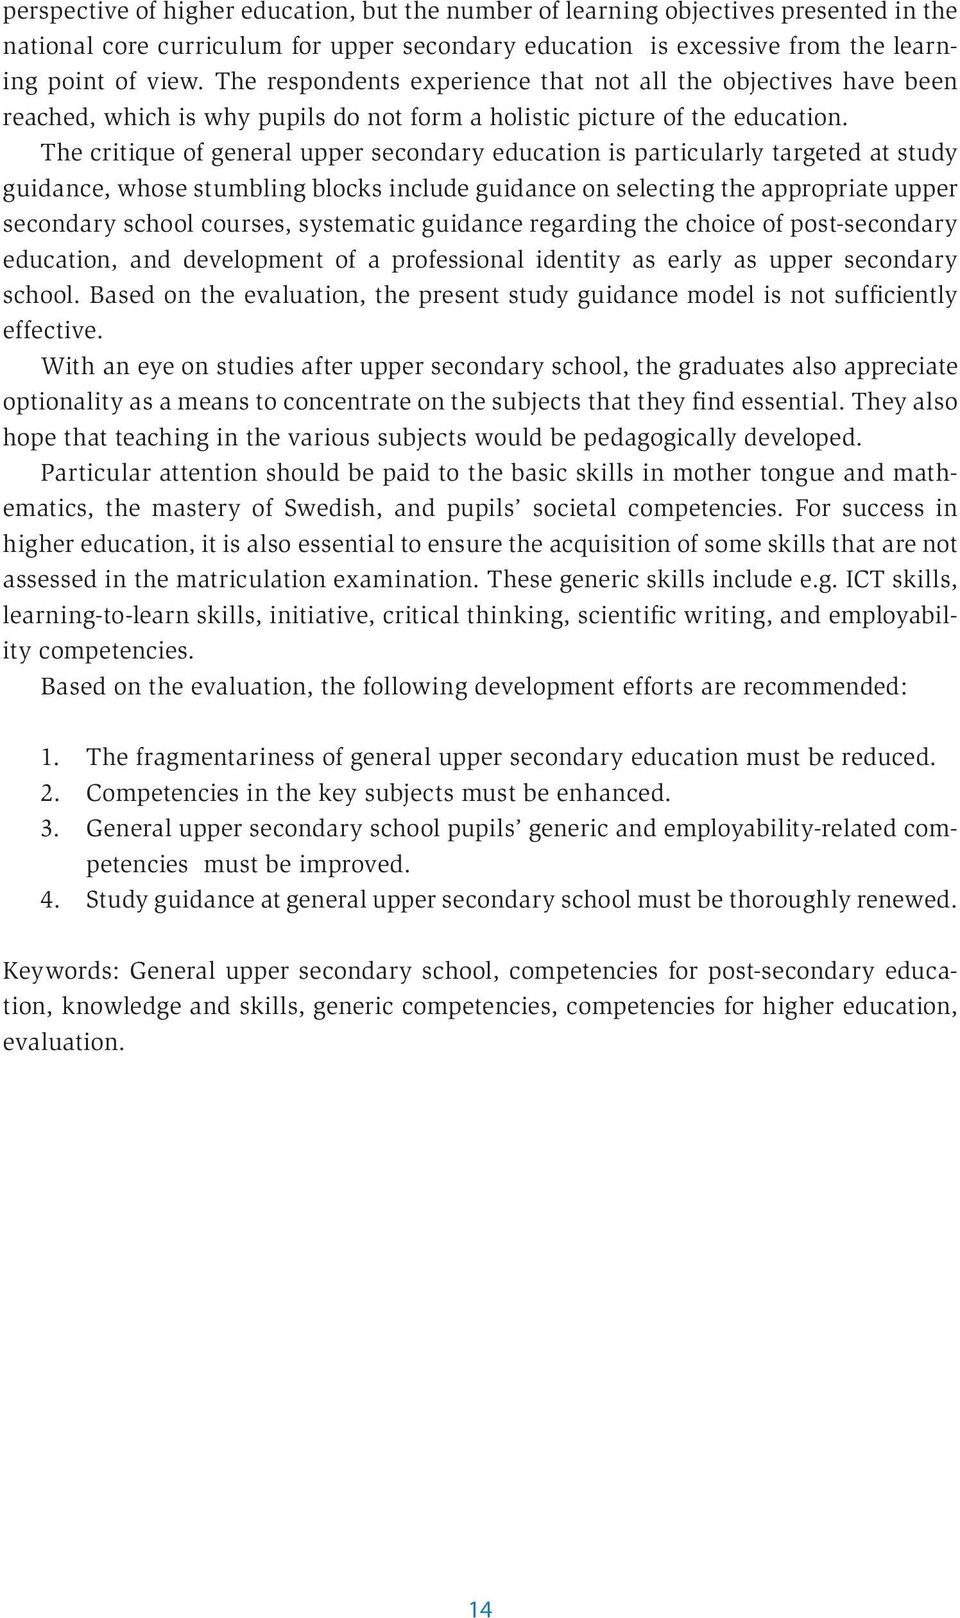 The critique of general upper secondary education is particularly targeted at study guidance, whose stumbling blocks include guidance on selecting the appropriate upper secondary school courses,